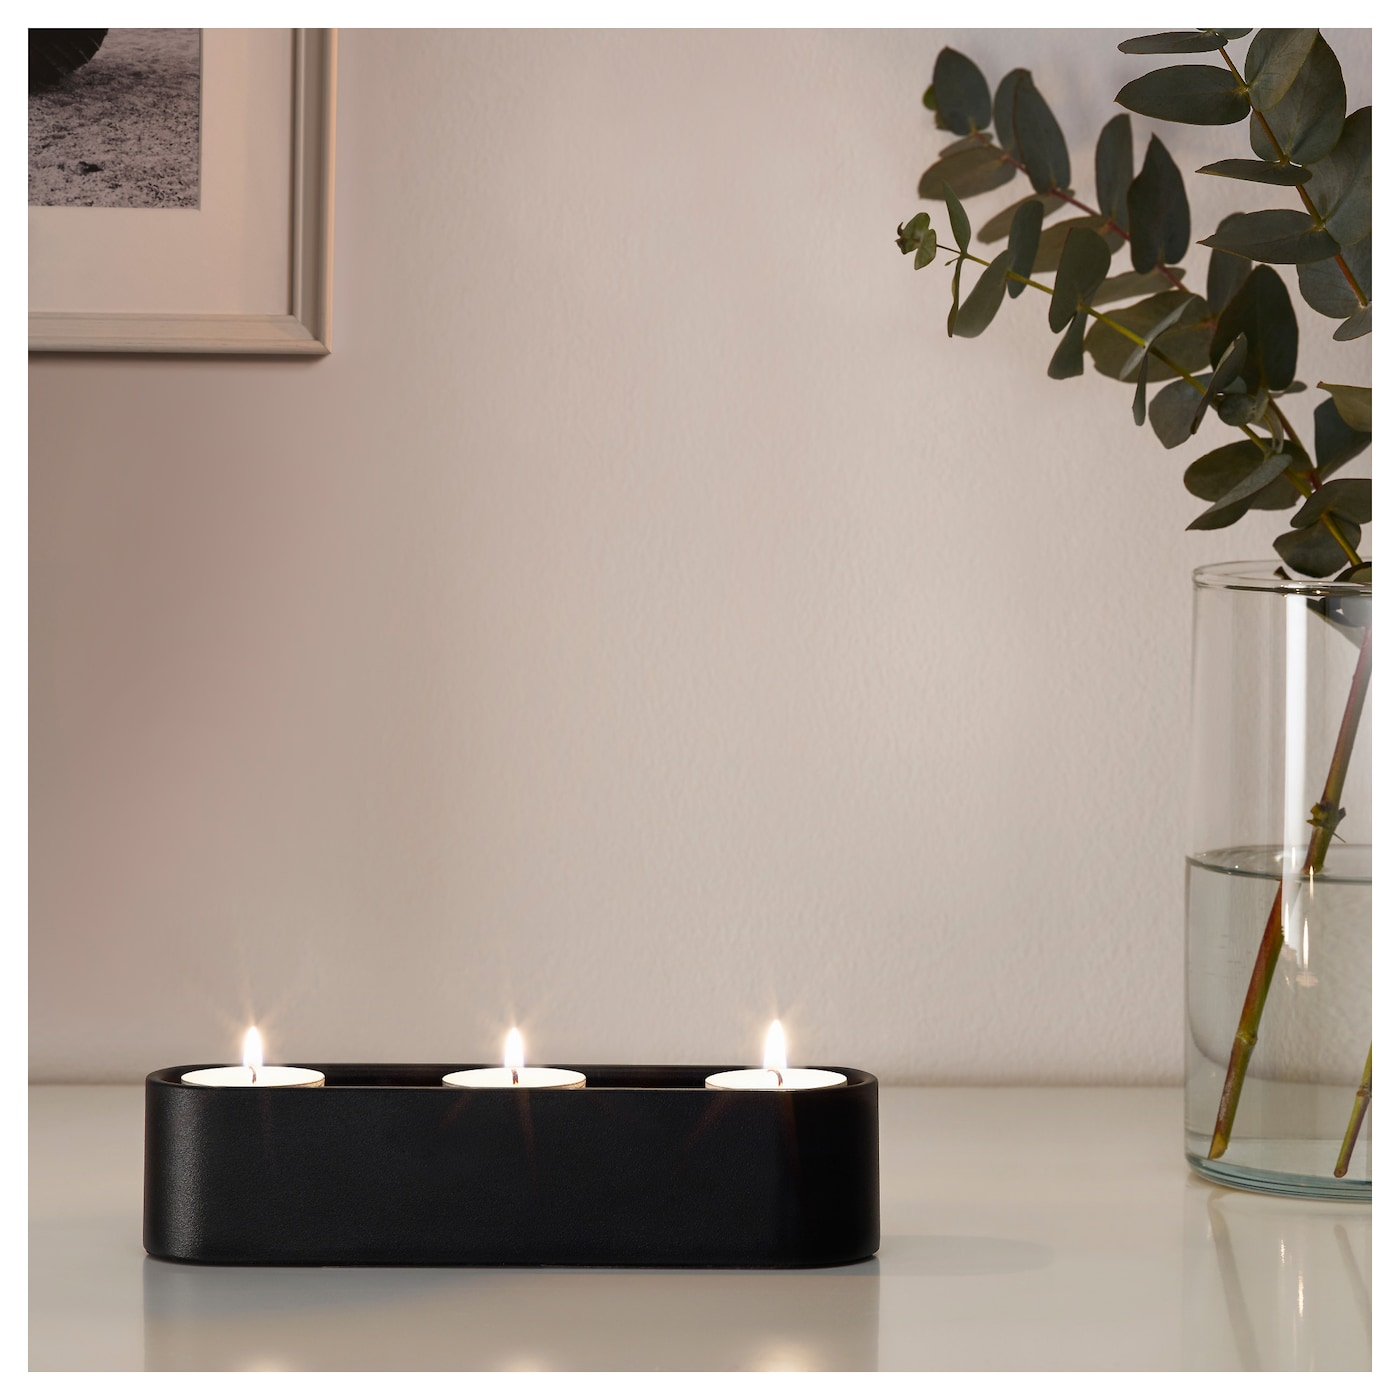 IKEA YPPERLIG tealight holder for 3 tealights